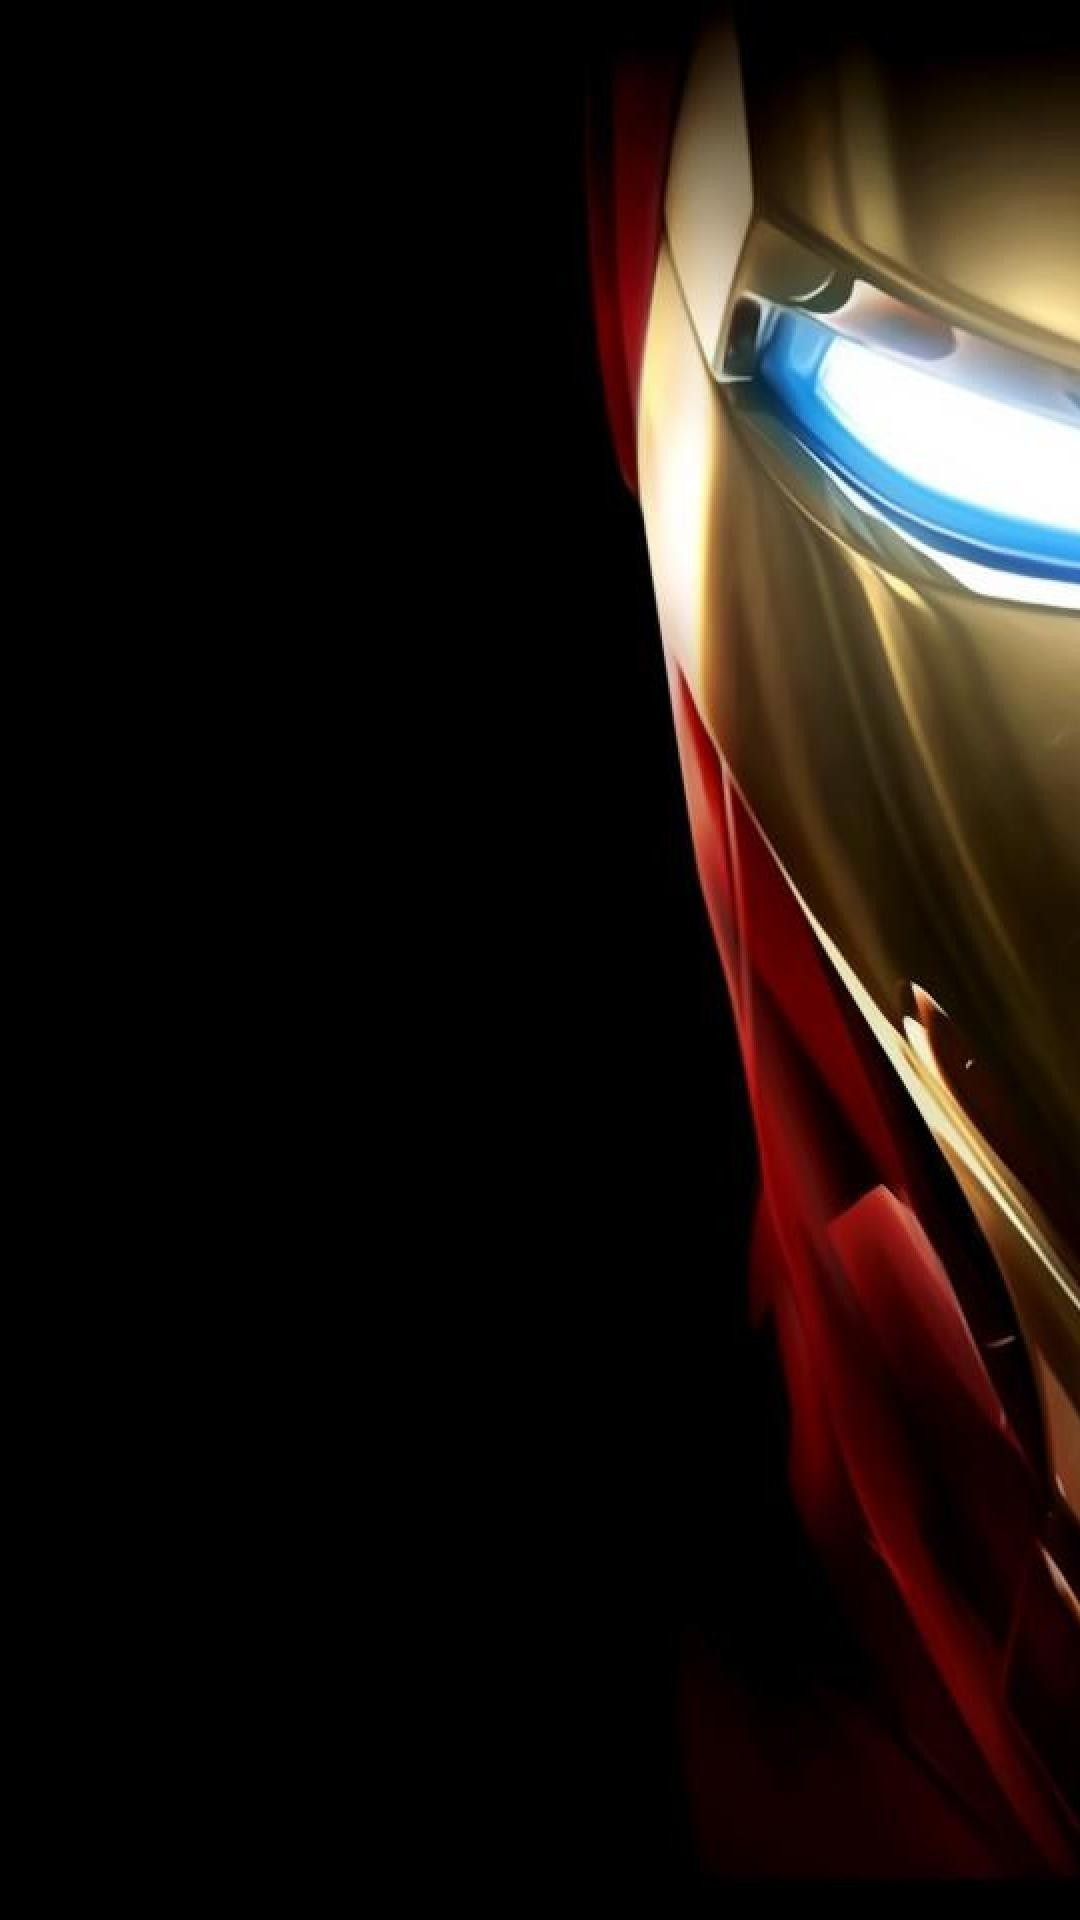 Iron Man Jarvis Live Wallpaper 78 images 1080x1920